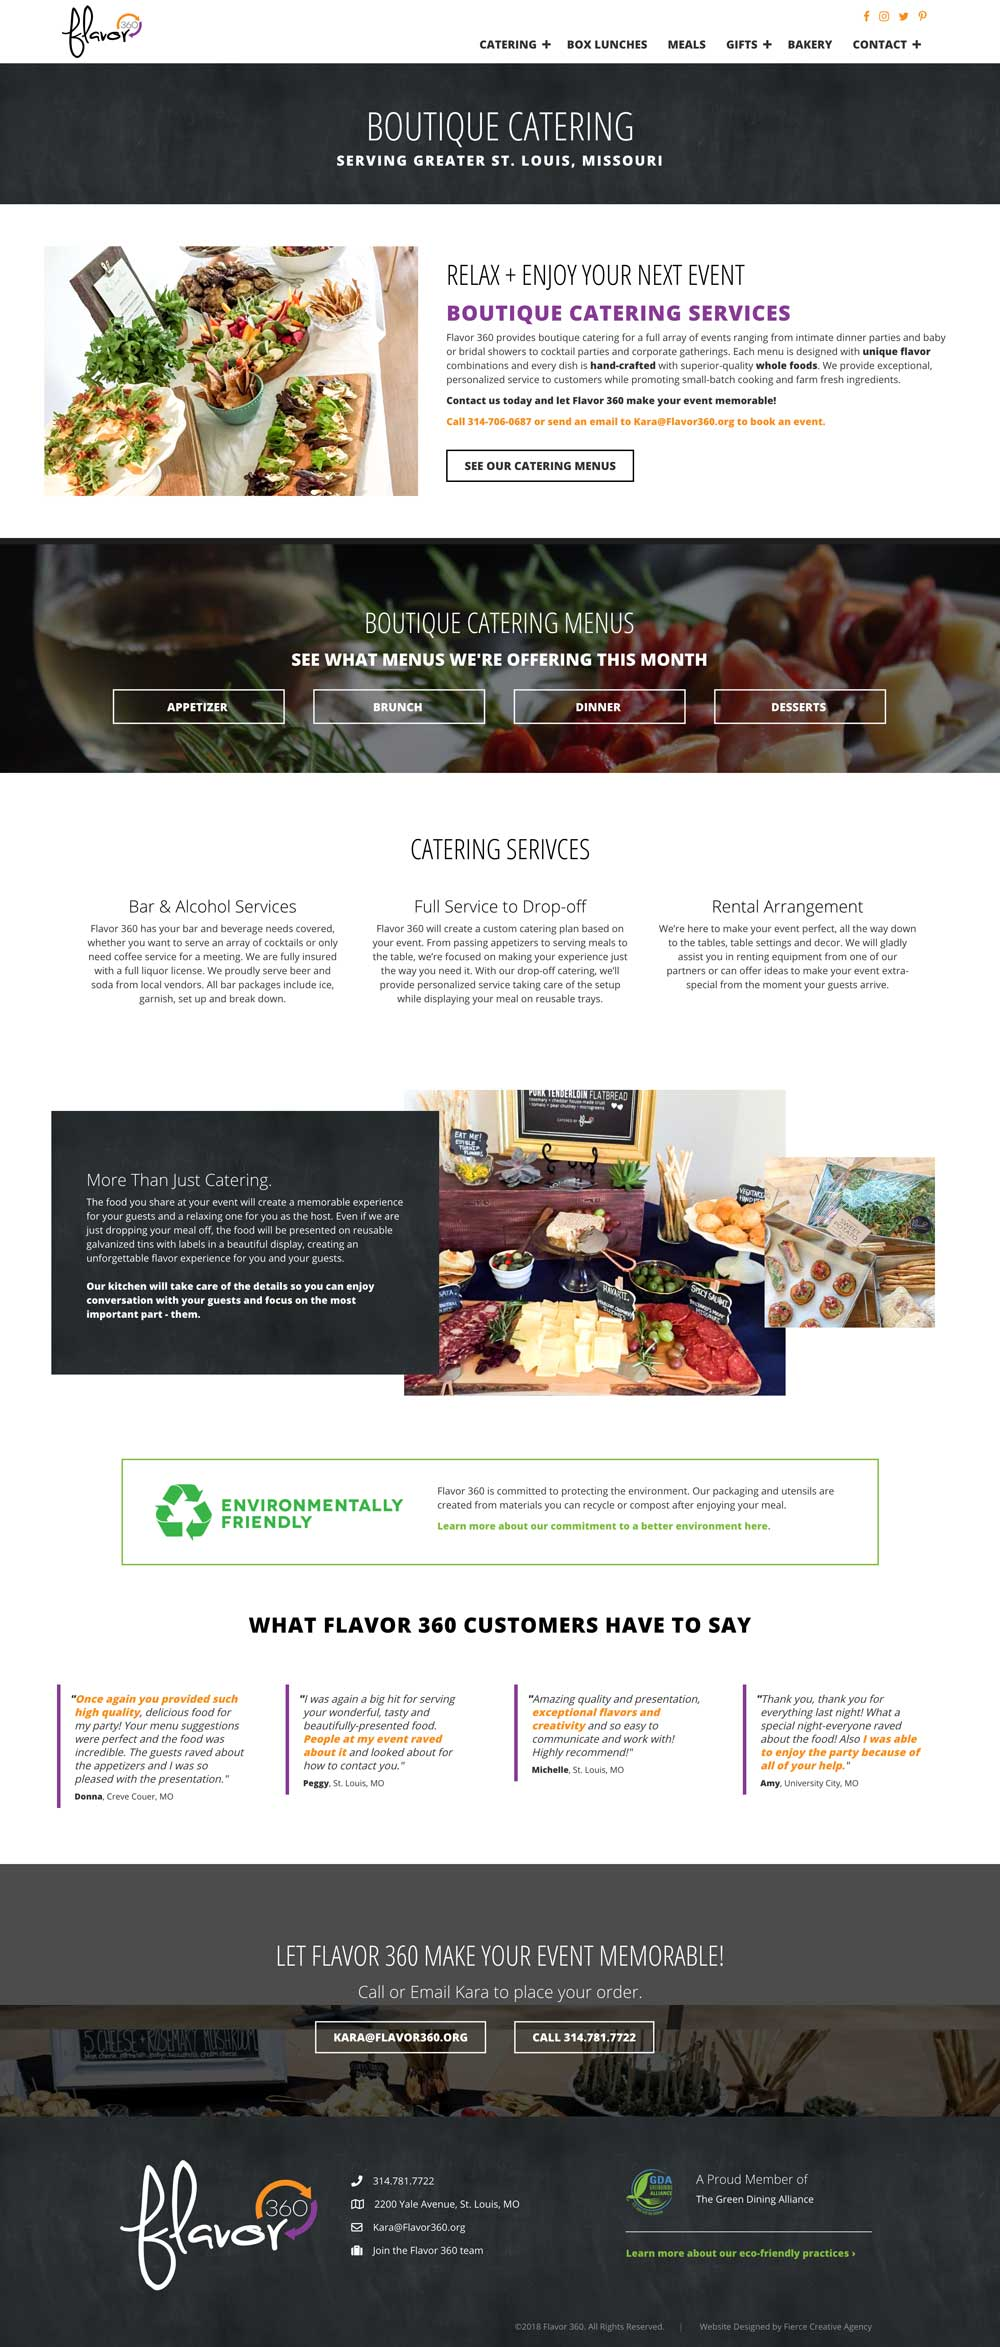 Flavor 360 Boutique Catering Page